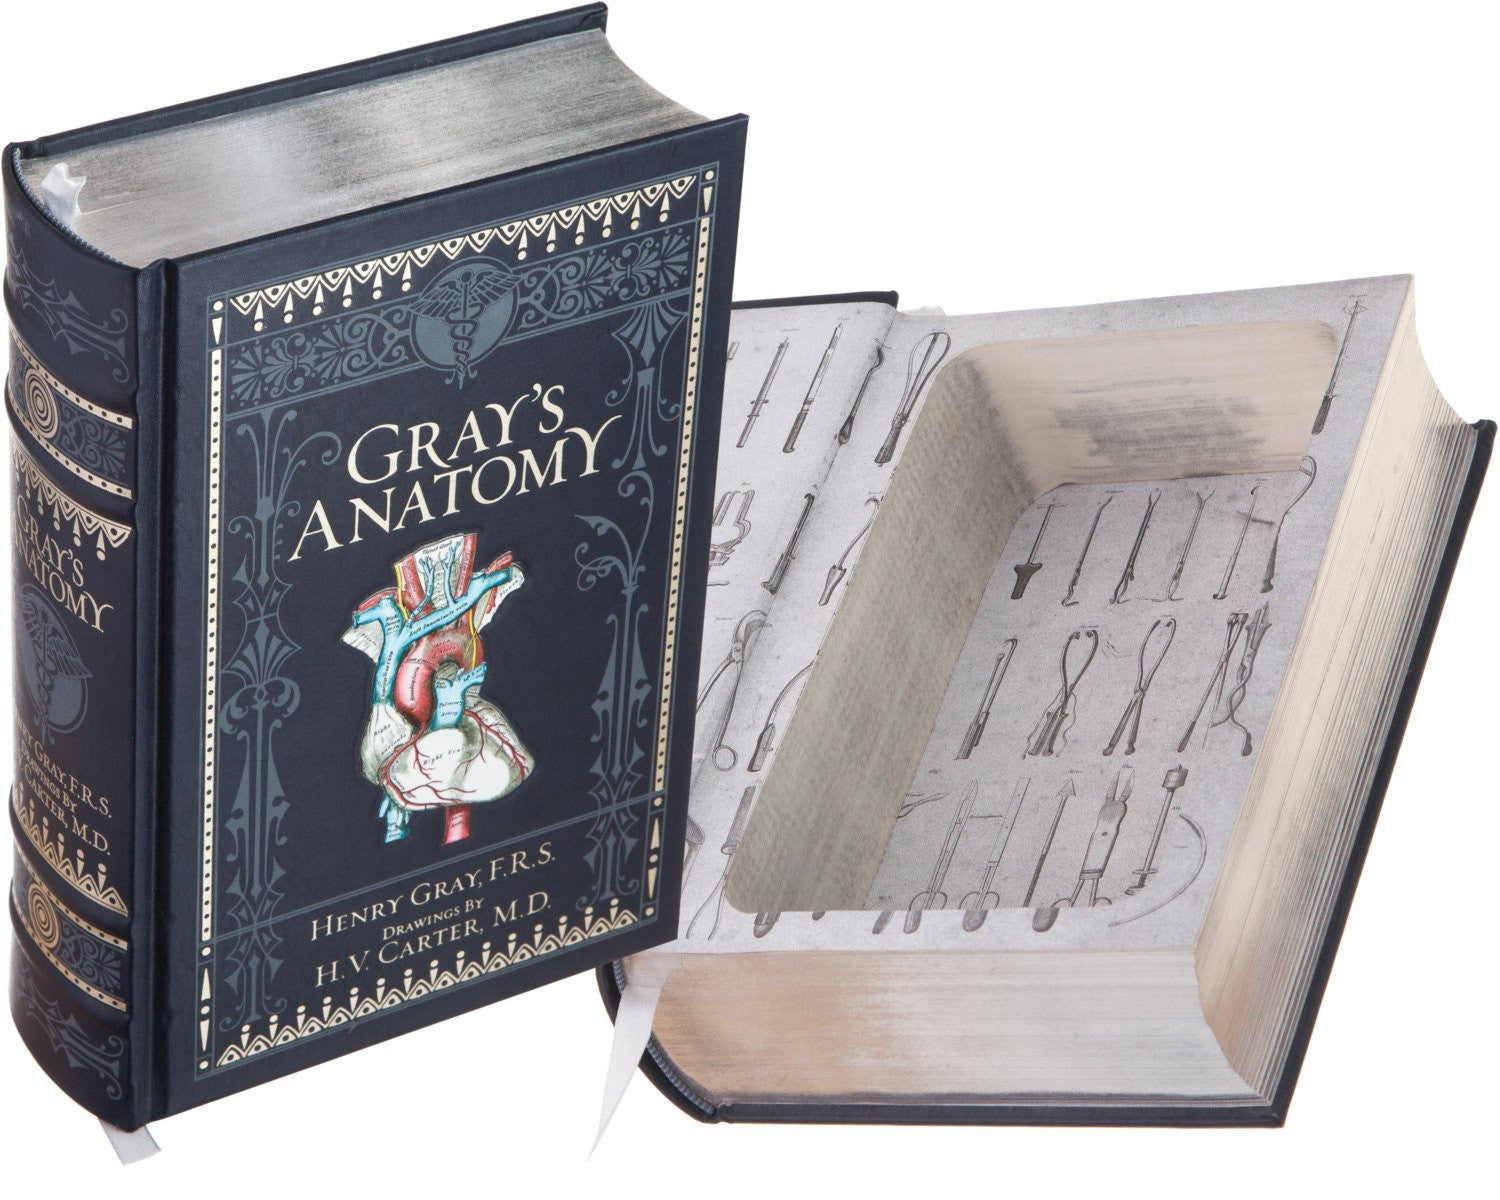 Gray\'s Anatomy by Henry Gray, F.R.S. with Drawings by H.V. Carter ...